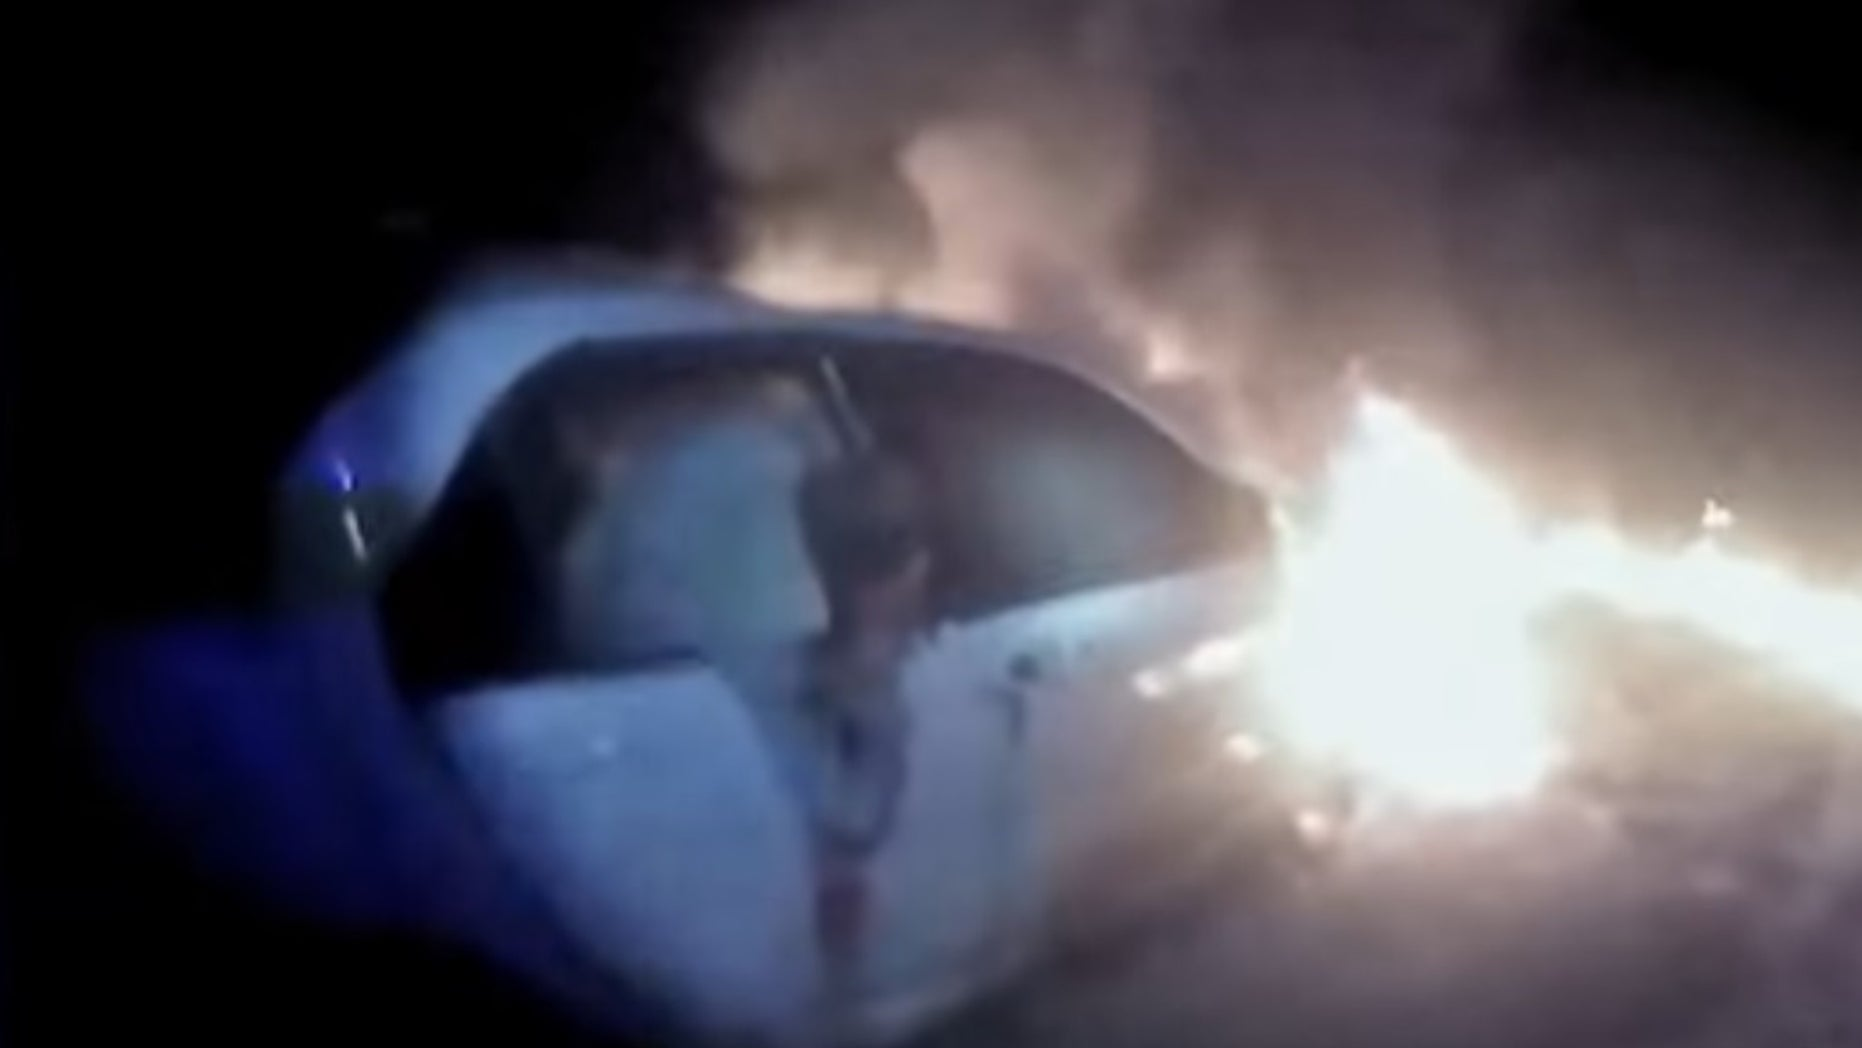 Video footage as the officer ran up to the burning car.